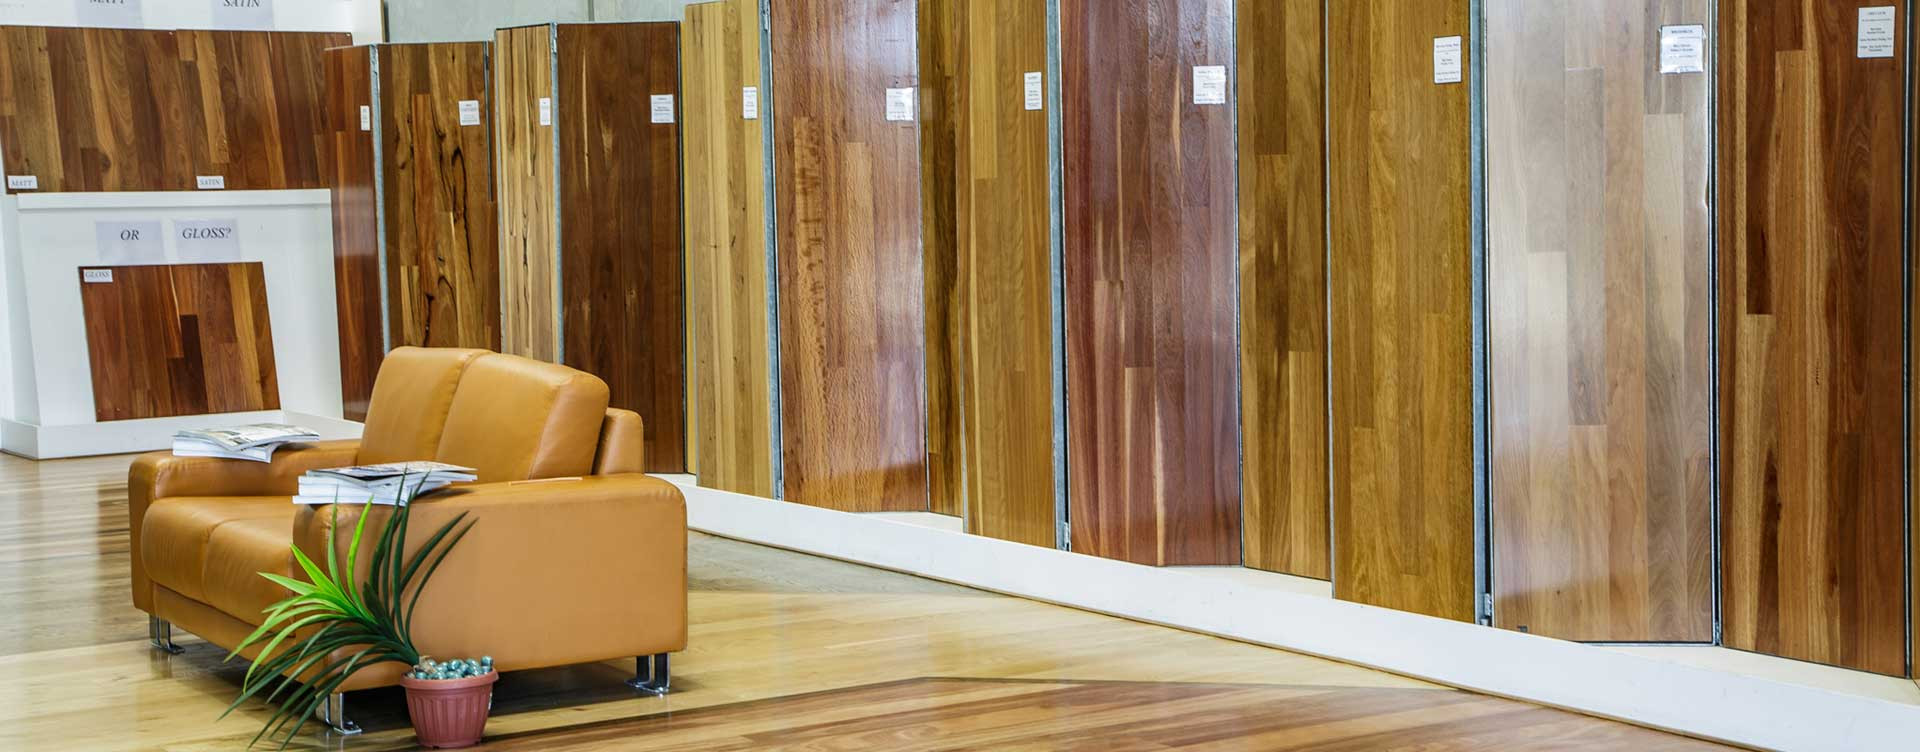 hardwood flooring brisbane prices of timber flooring perth coastal flooring wa quality wooden with regard to fully trained and friendly staff to assist with every aspect of your query